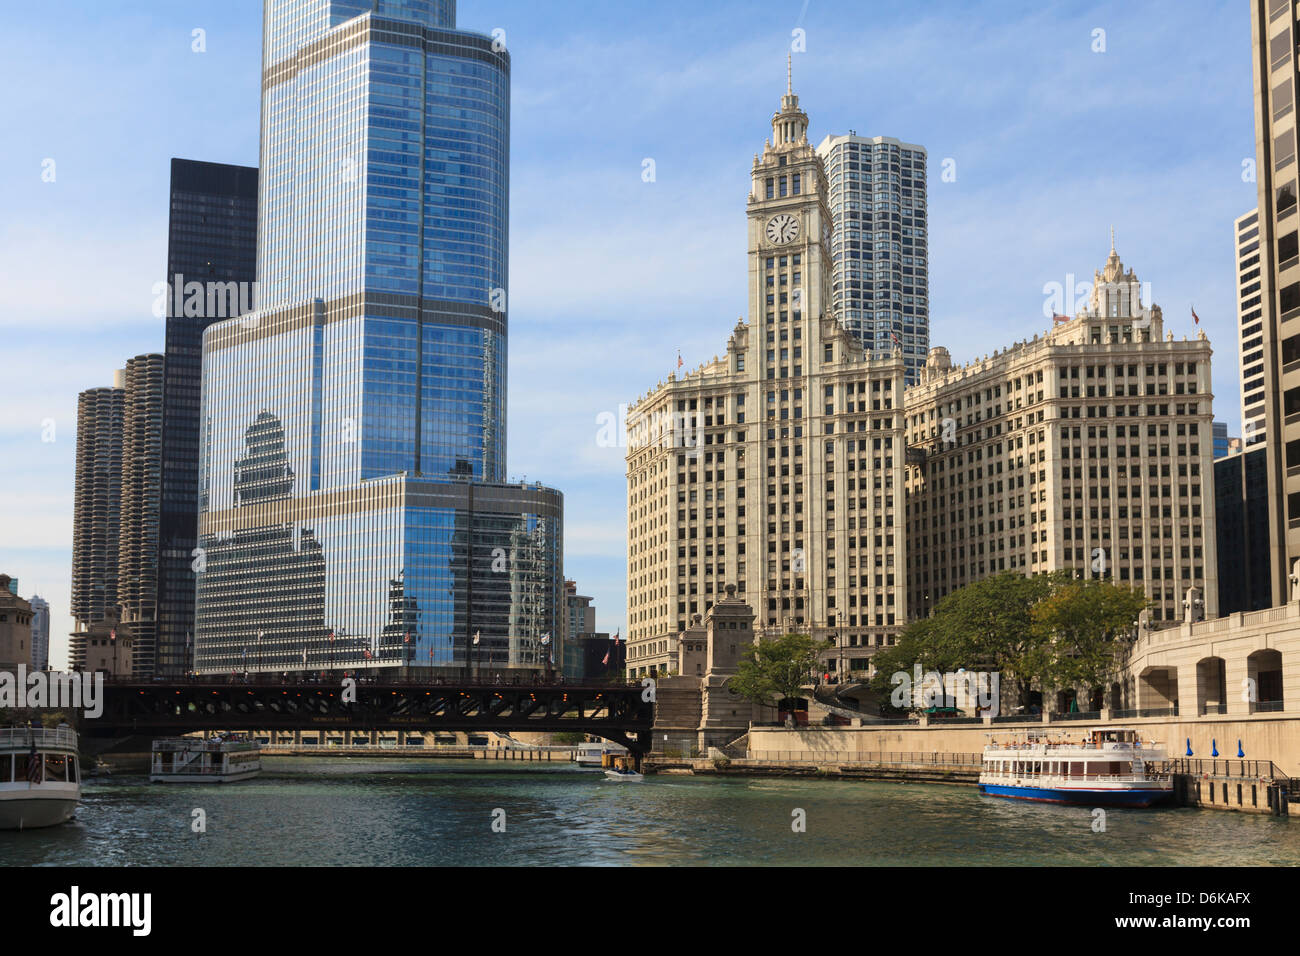 Trump Tower and the Wrigley Building by the Chicago River, Chicago, Illinois, United States of America, North America - Stock Image